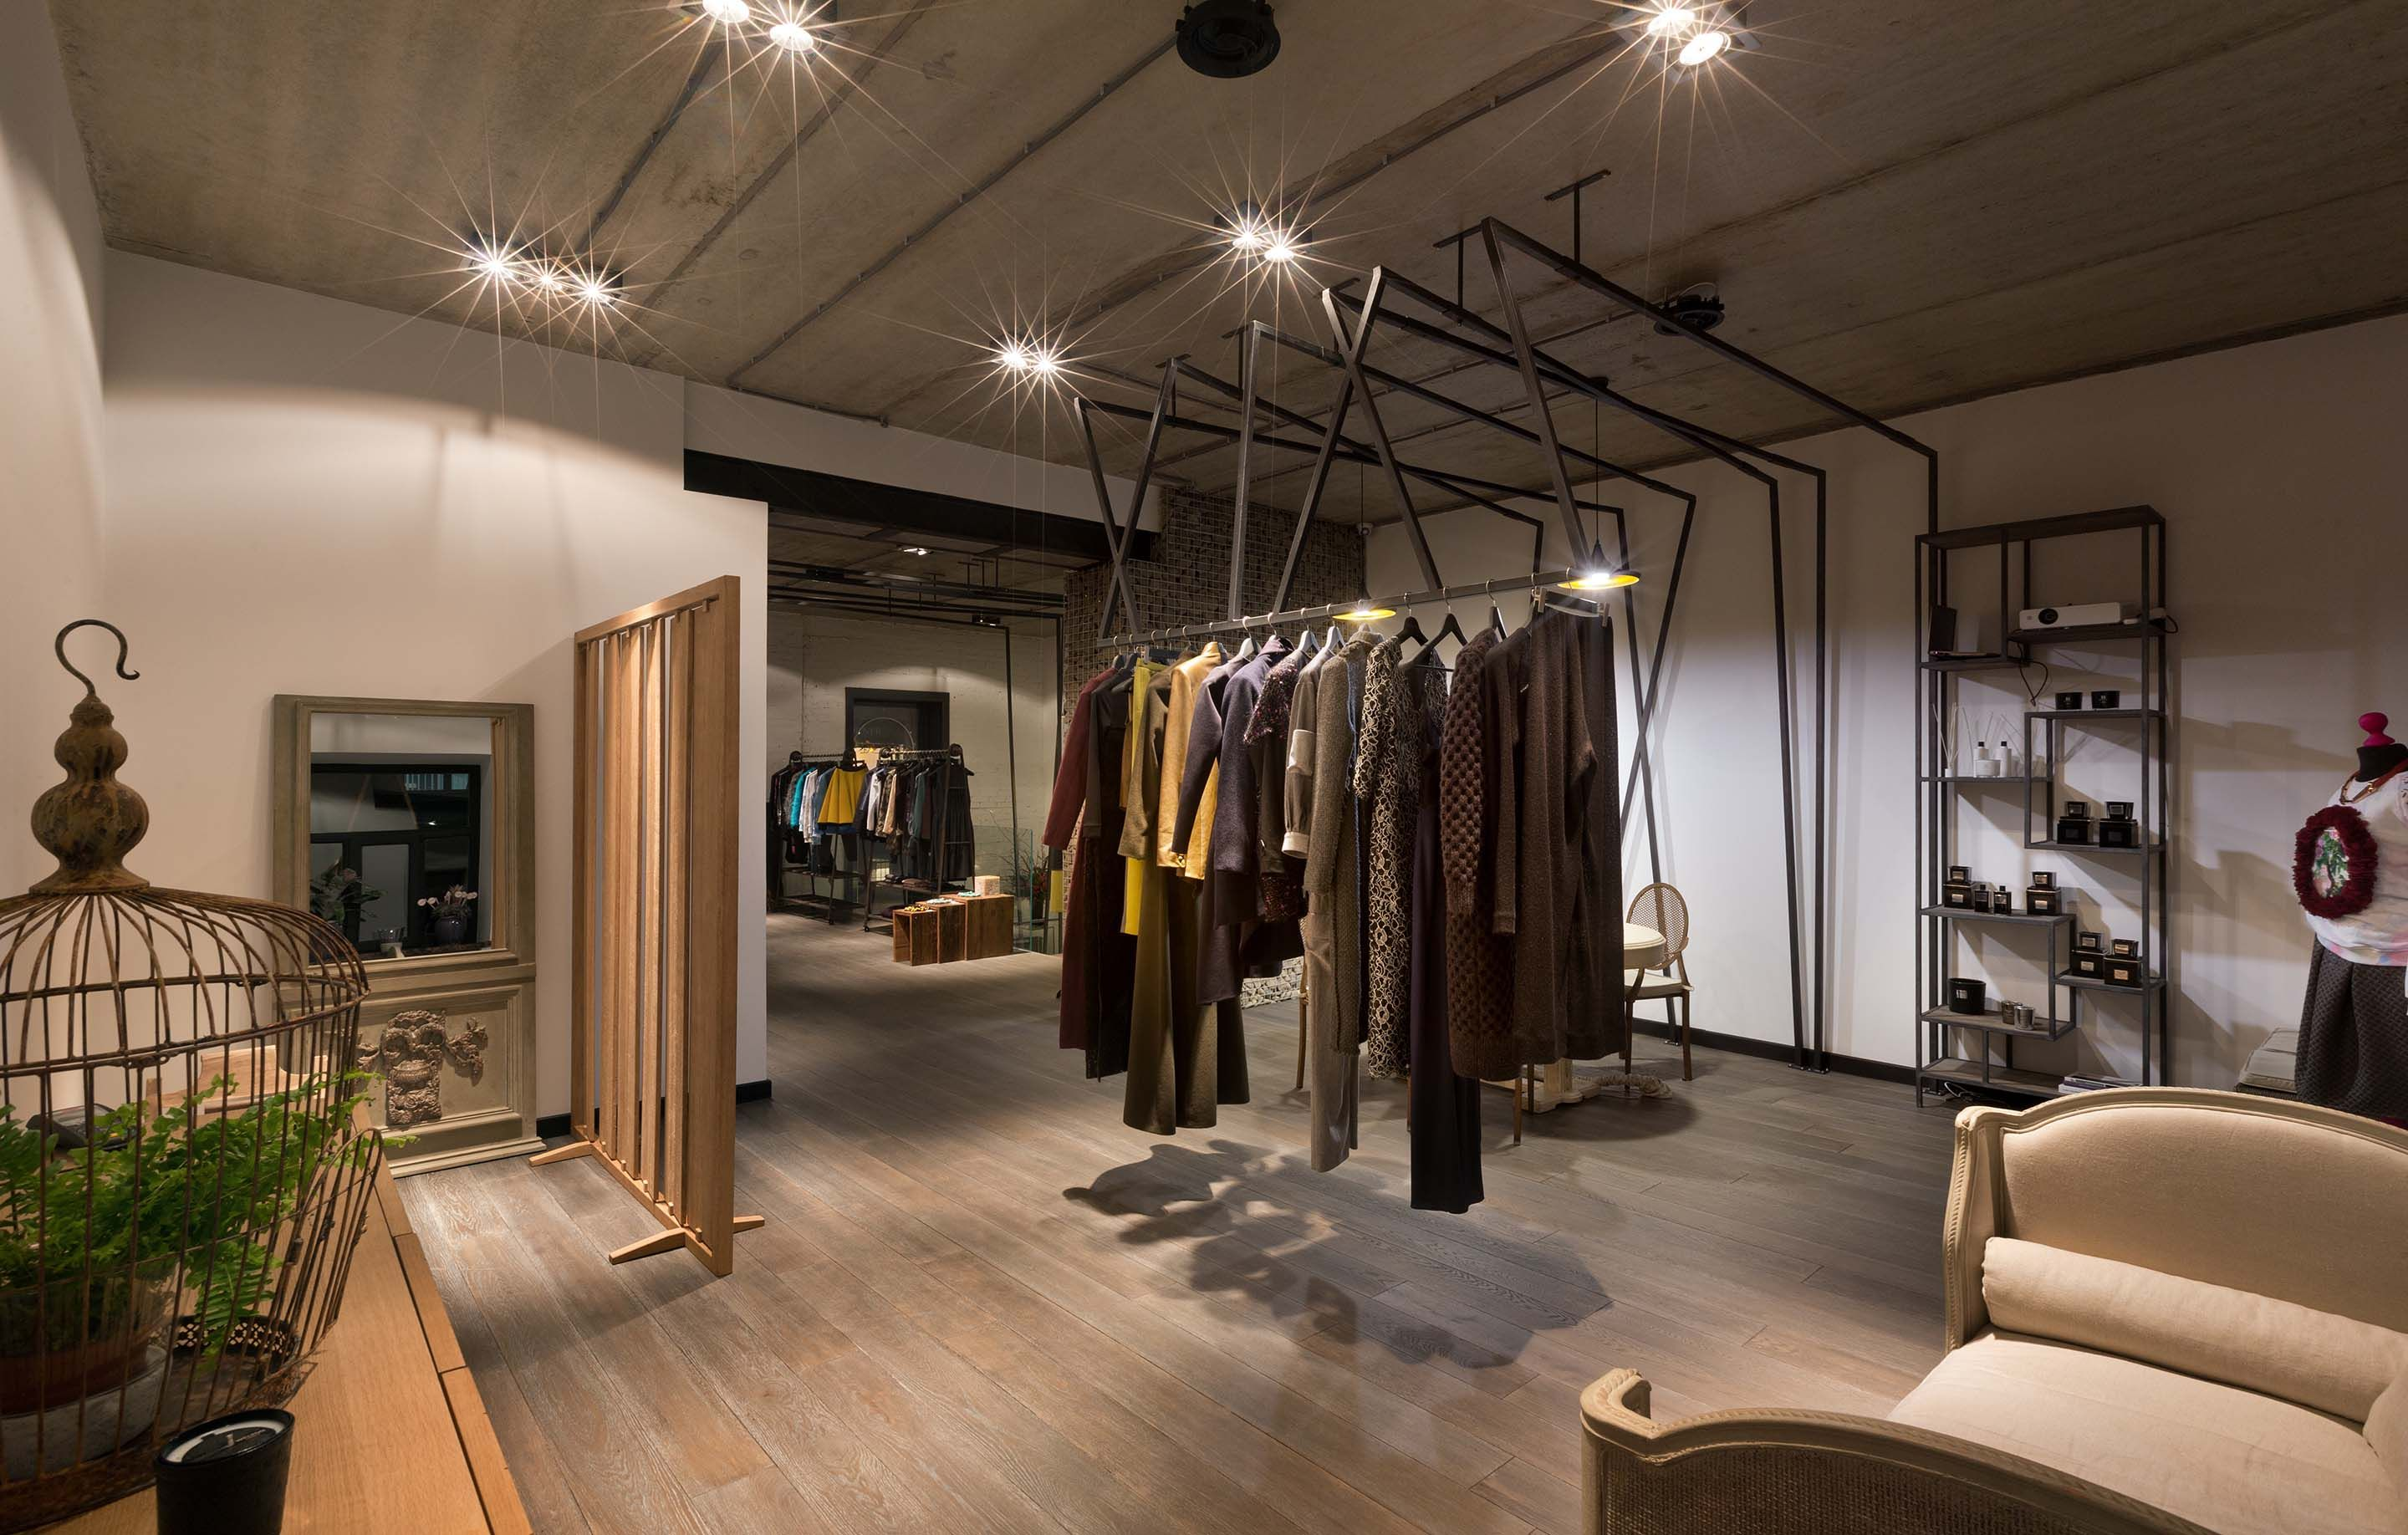 Flamant Mobili ~ Multibrand concept store and fashion atelier s.m.l.xl. in kyiv